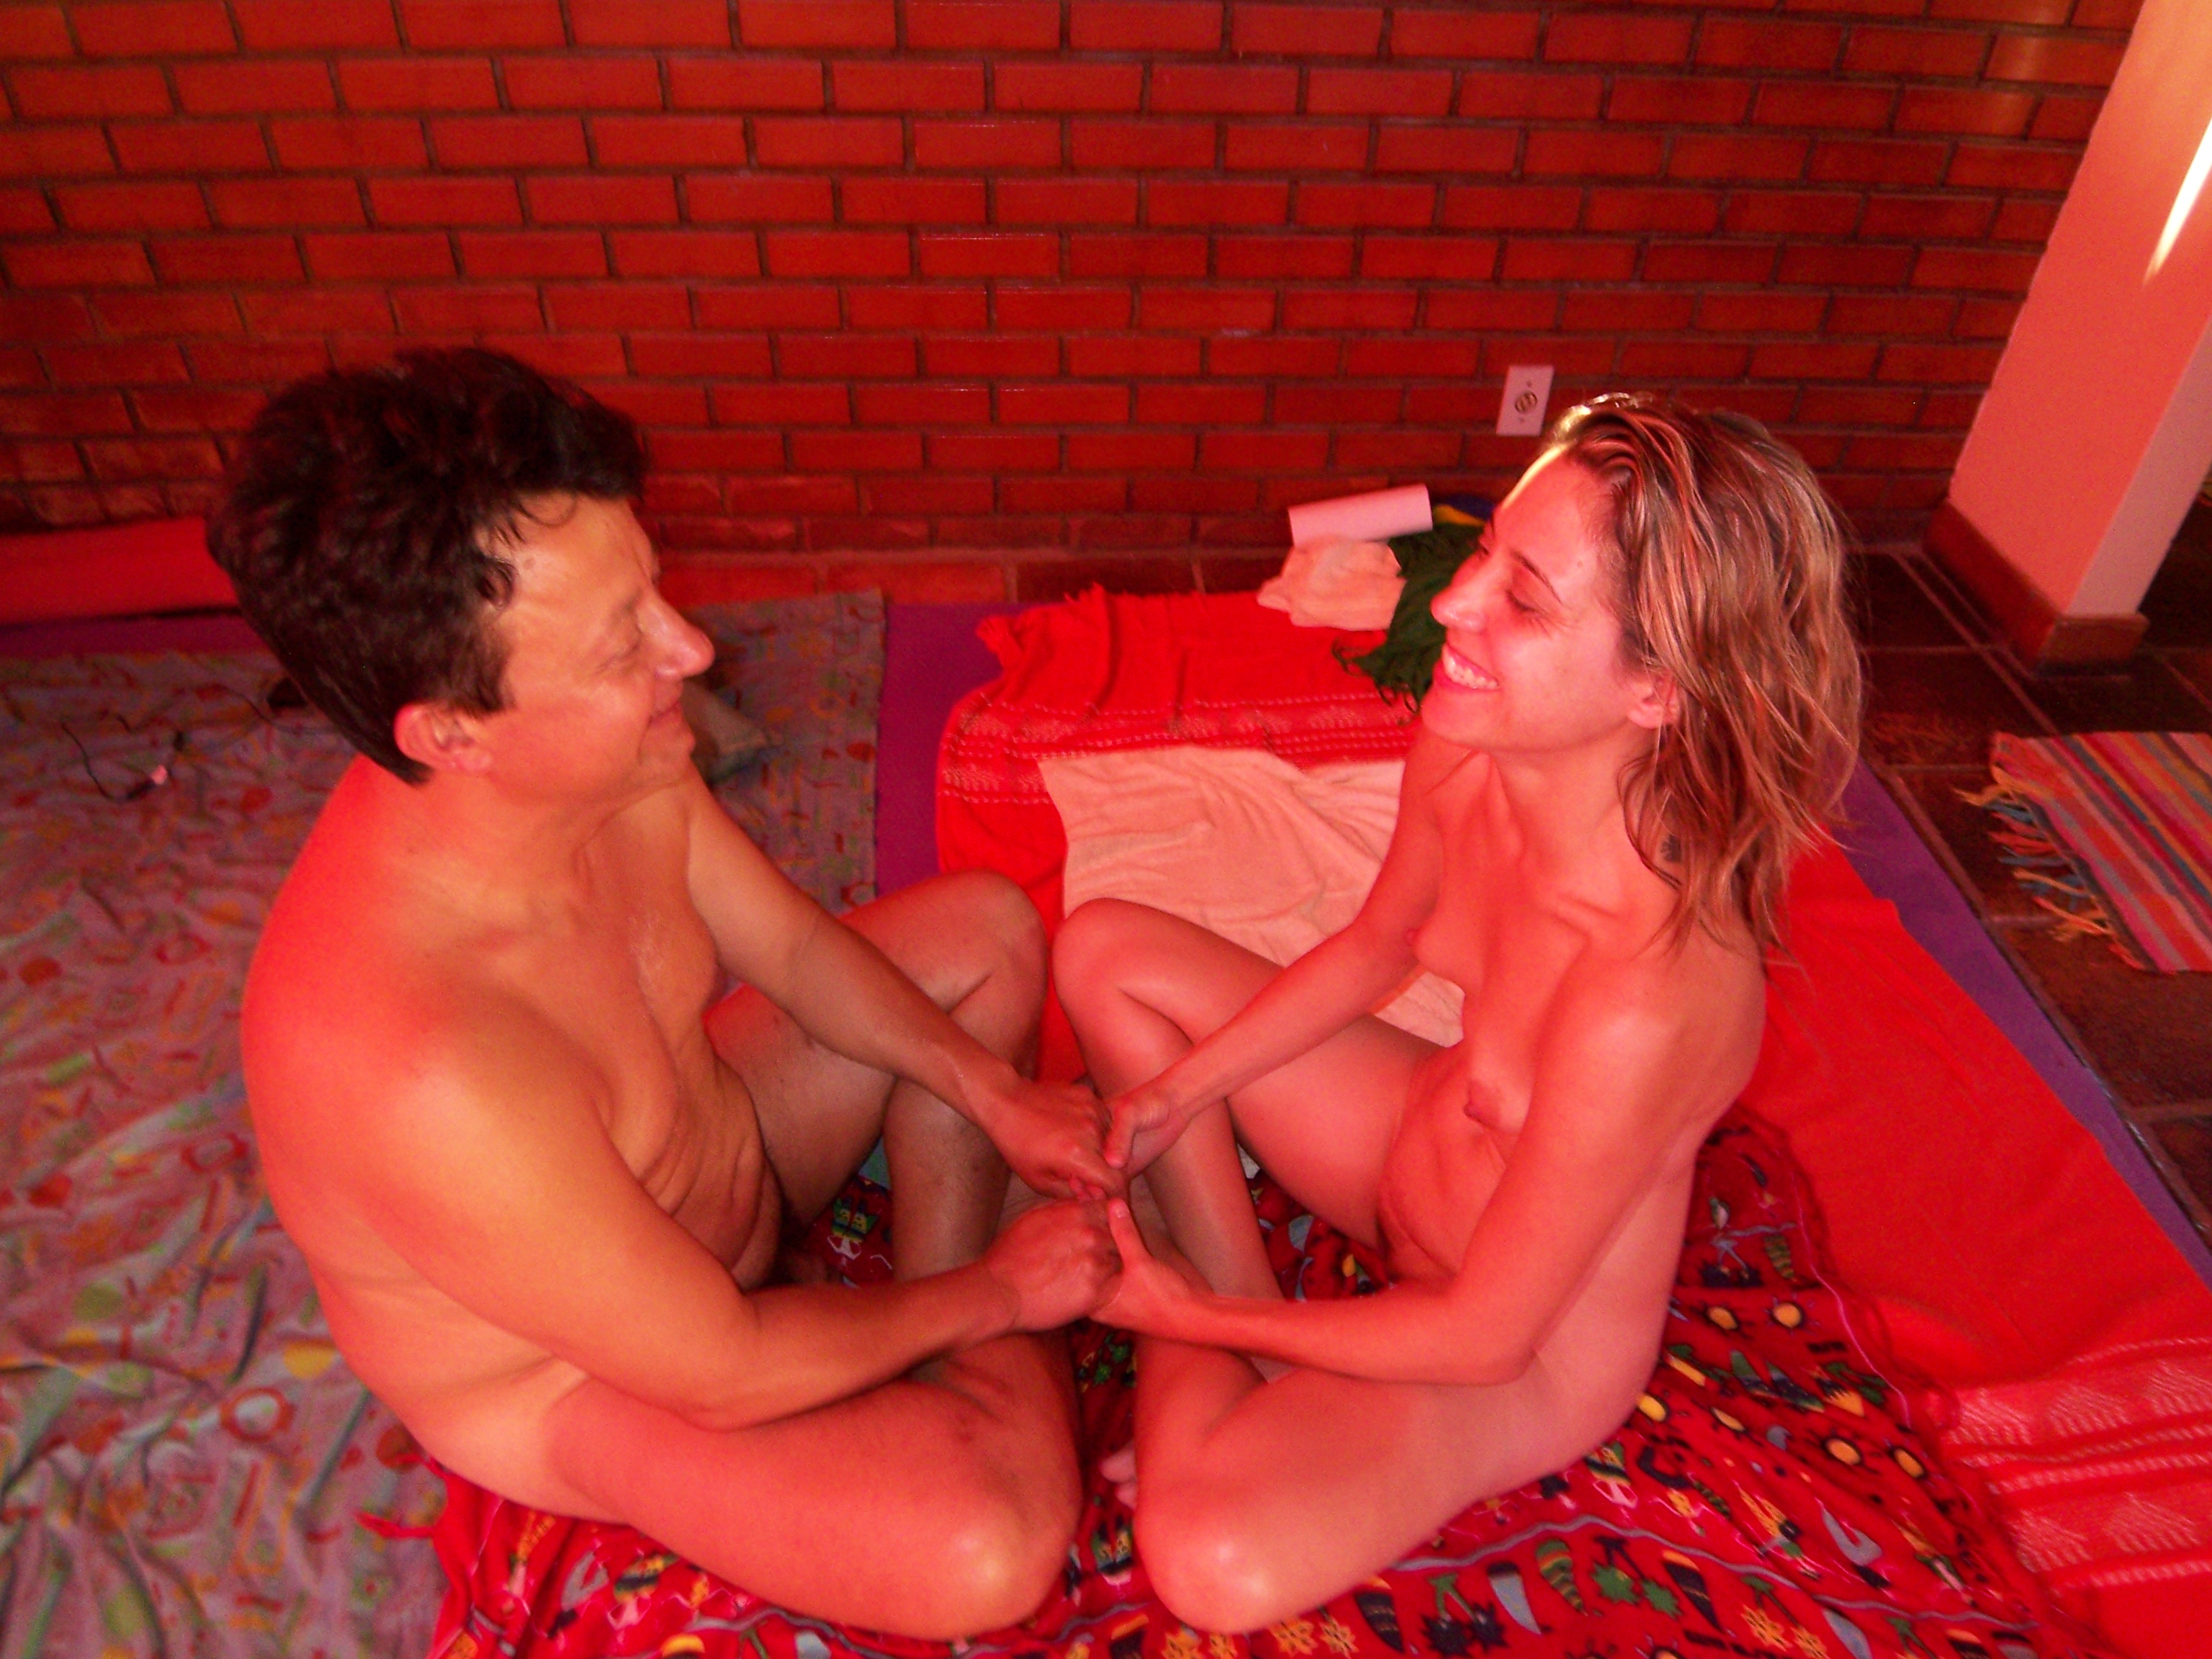 thai women real tantra massage video